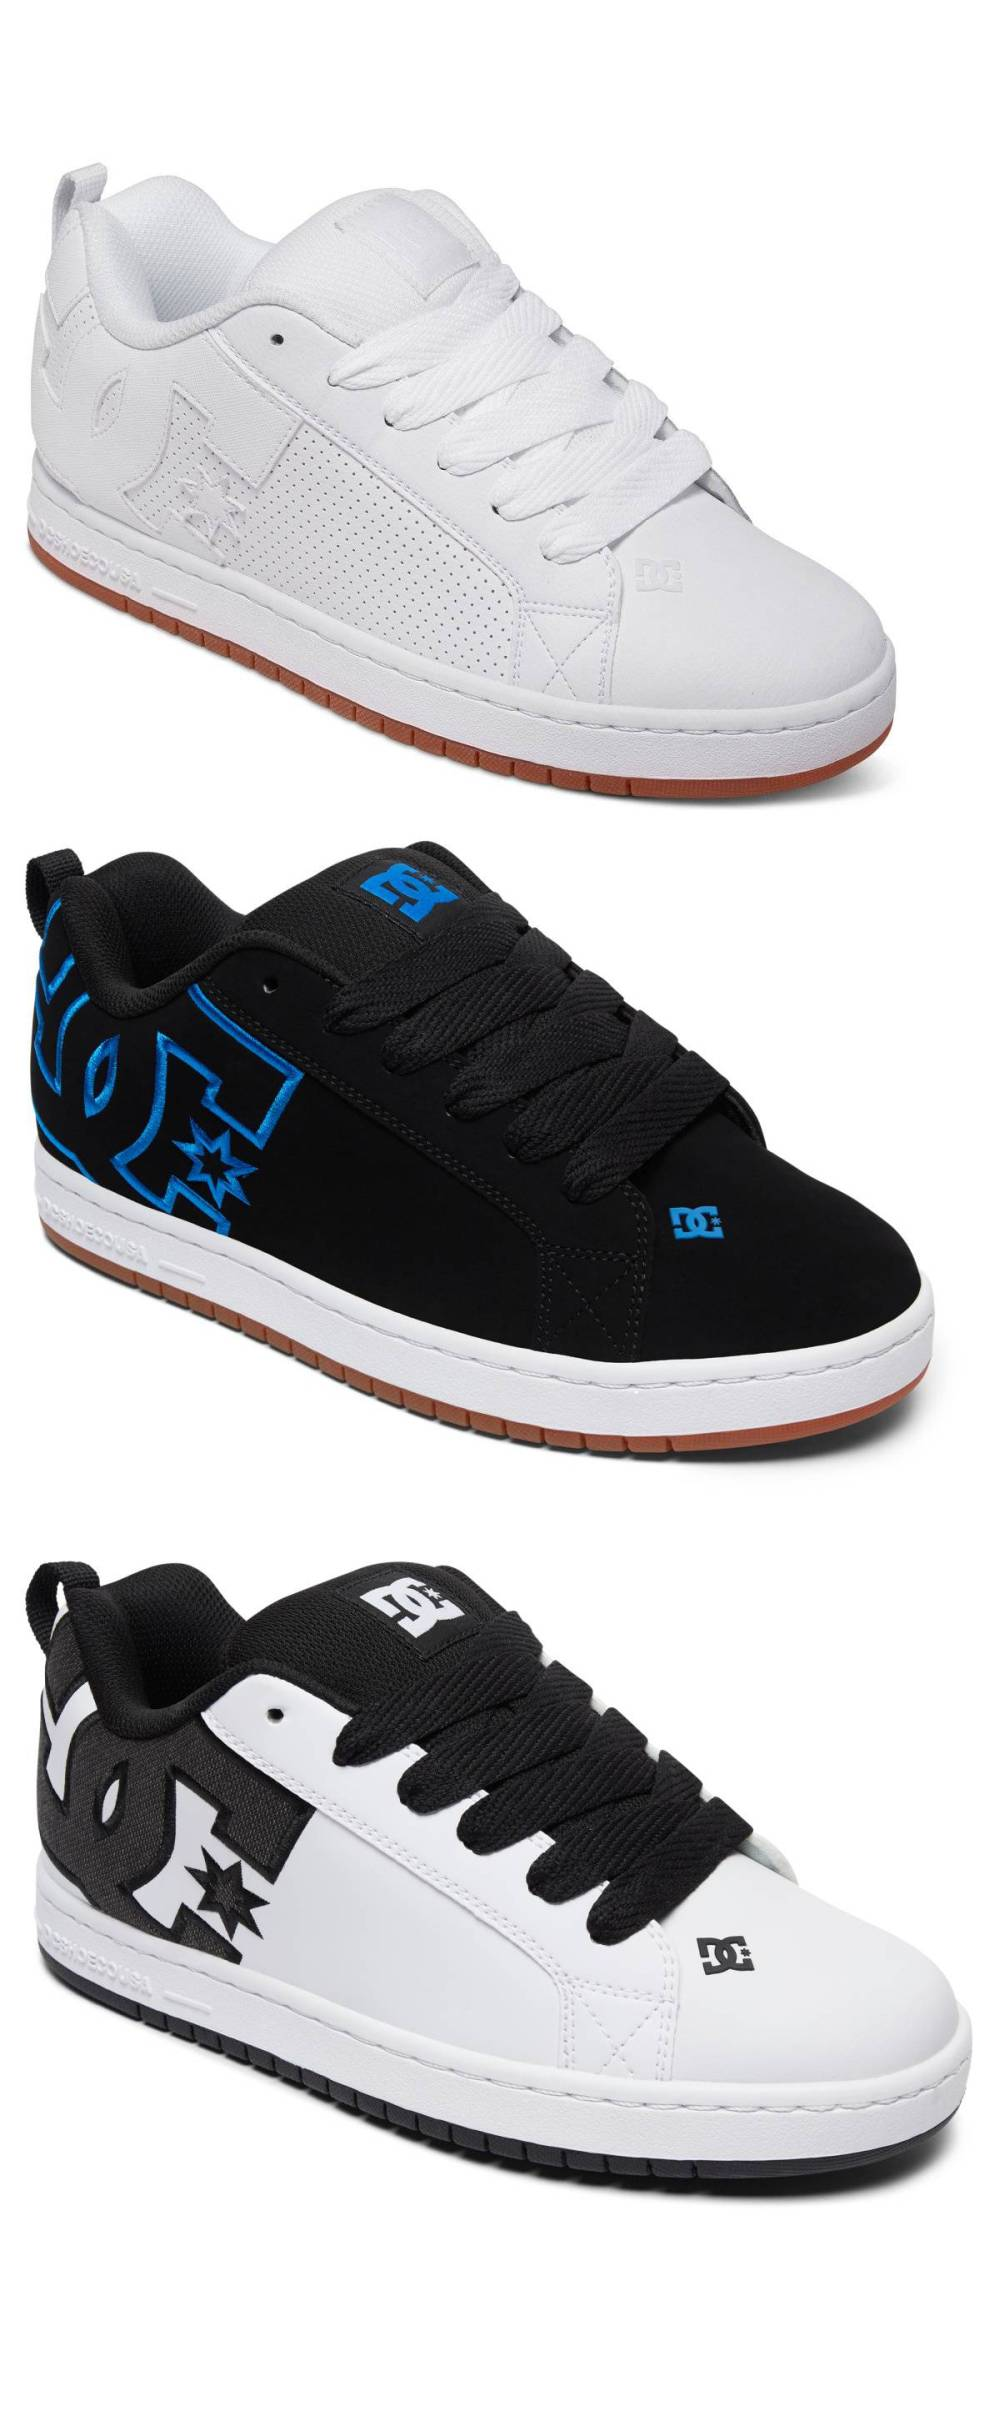 Dc Shoes Court Graffik Low-Cut Sneaker Skate Shoes Leather Textile Shoes